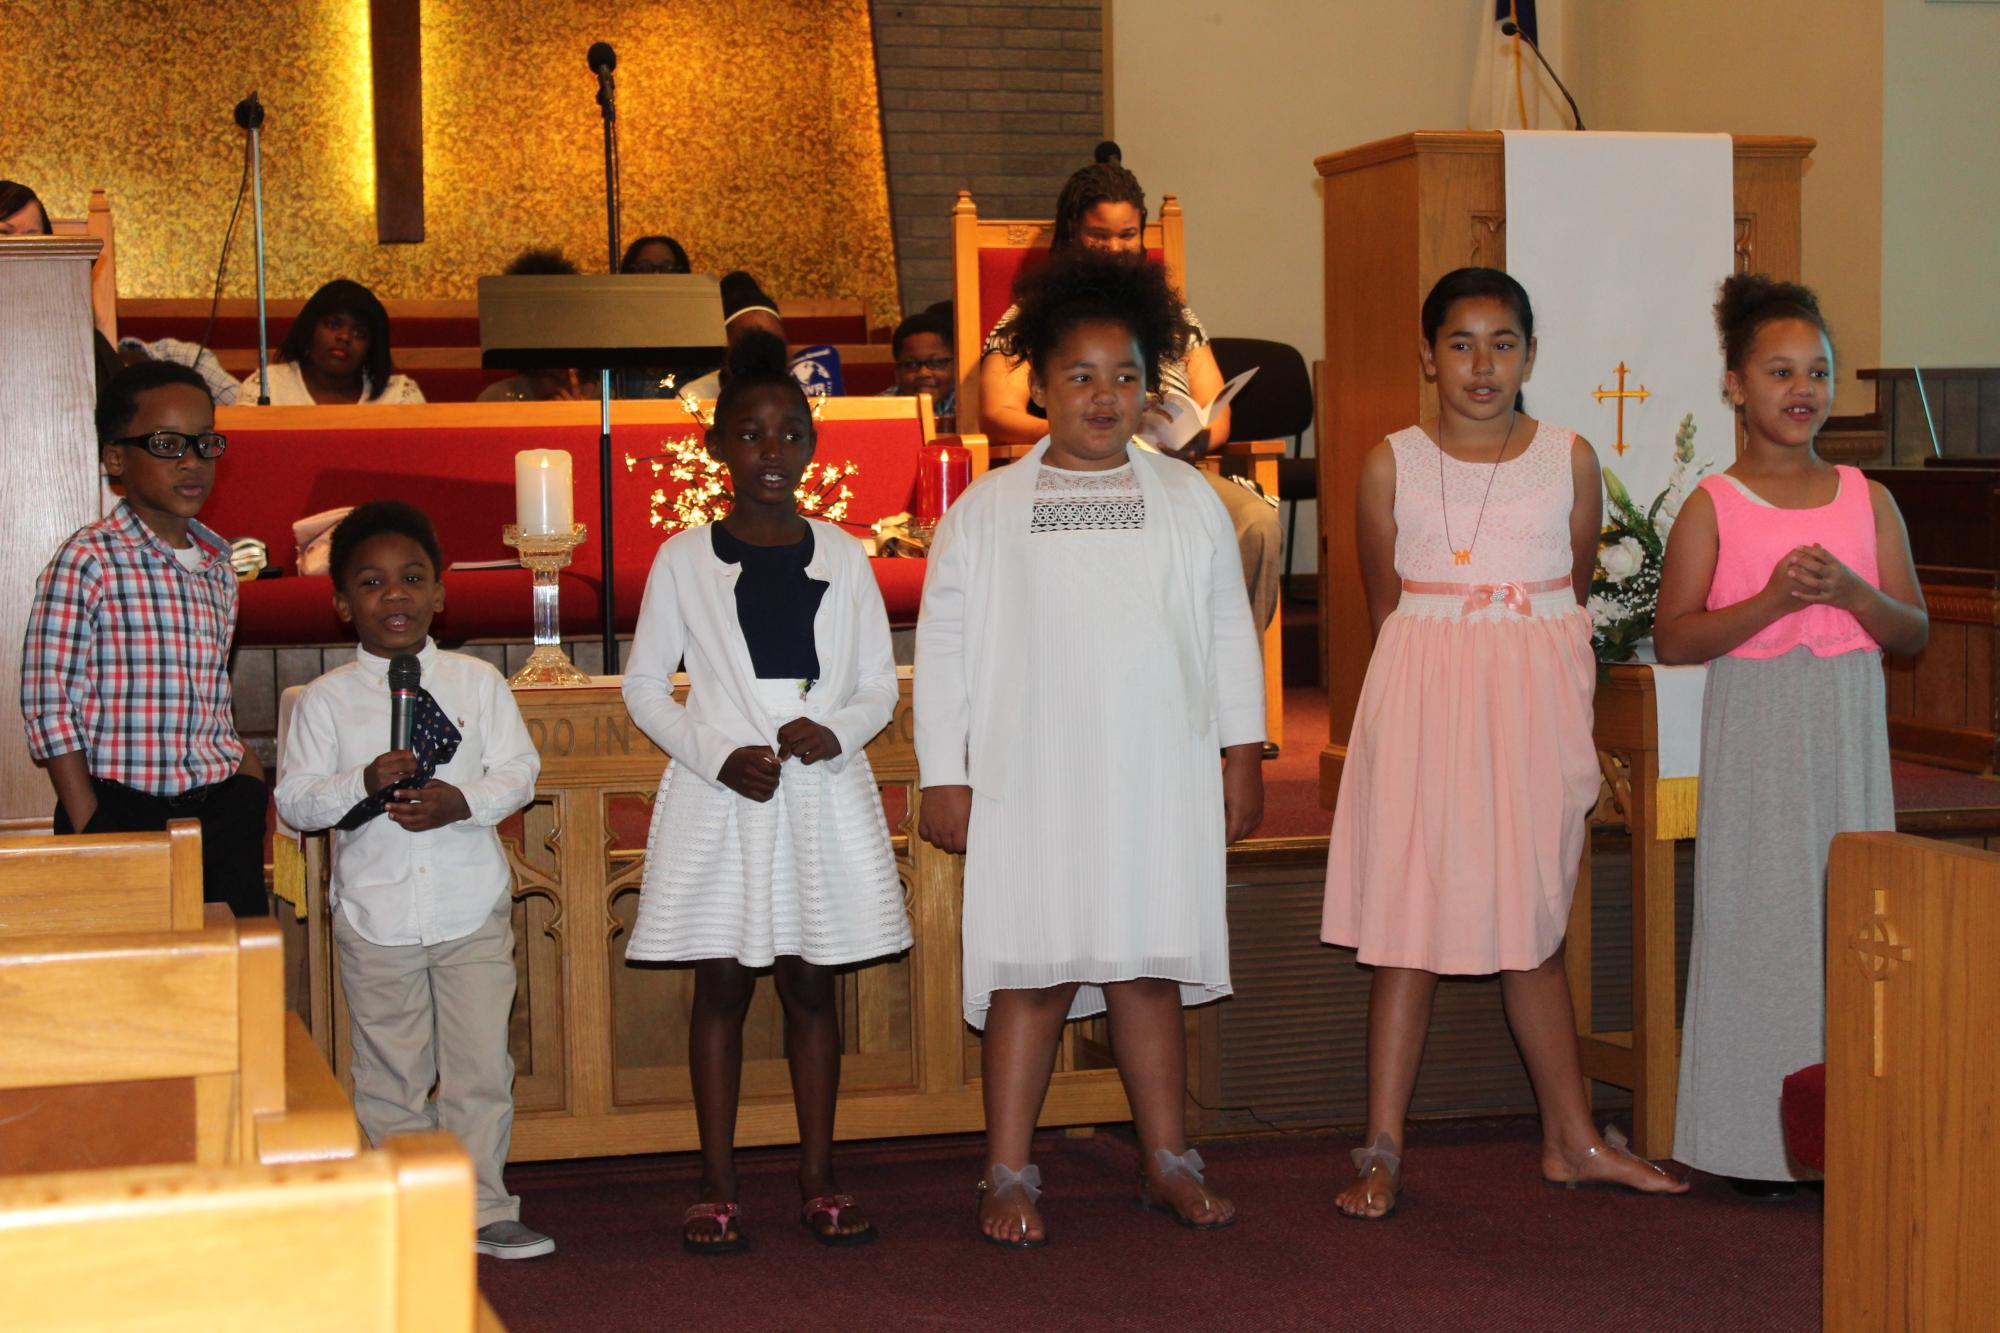 Children_s_Choir_at_Mothers_Day_2017.jpg